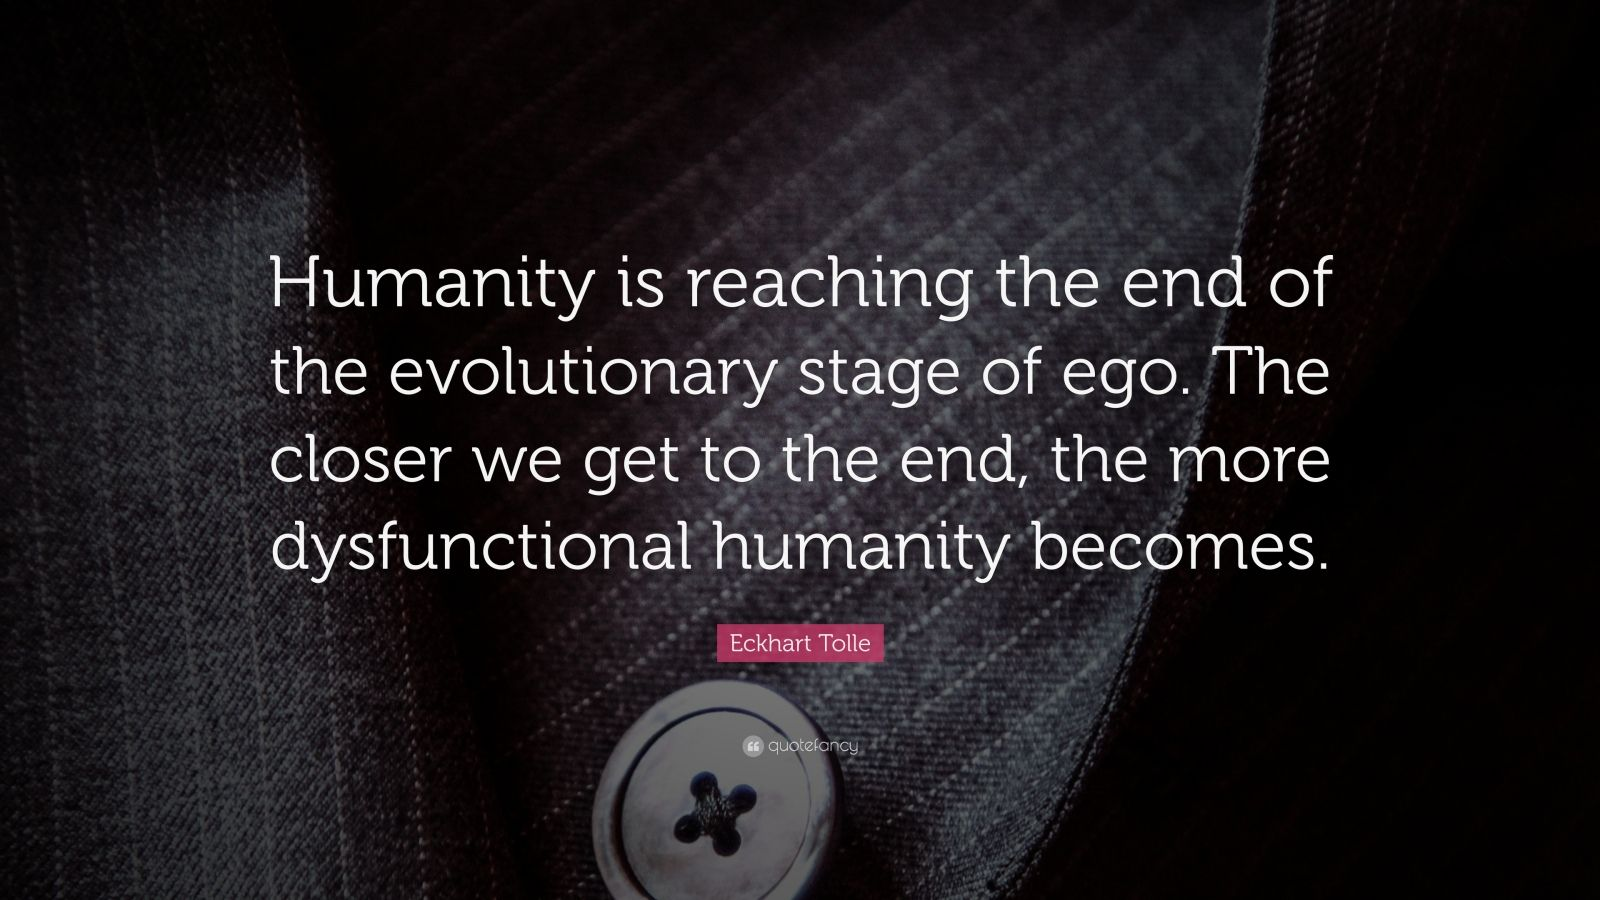 """Eckhart Tolle Quote: """"Humanity is reaching the end of the evolutionary stage of ego. The closer we get to the end, the more dysfunctional humanity becomes."""""""